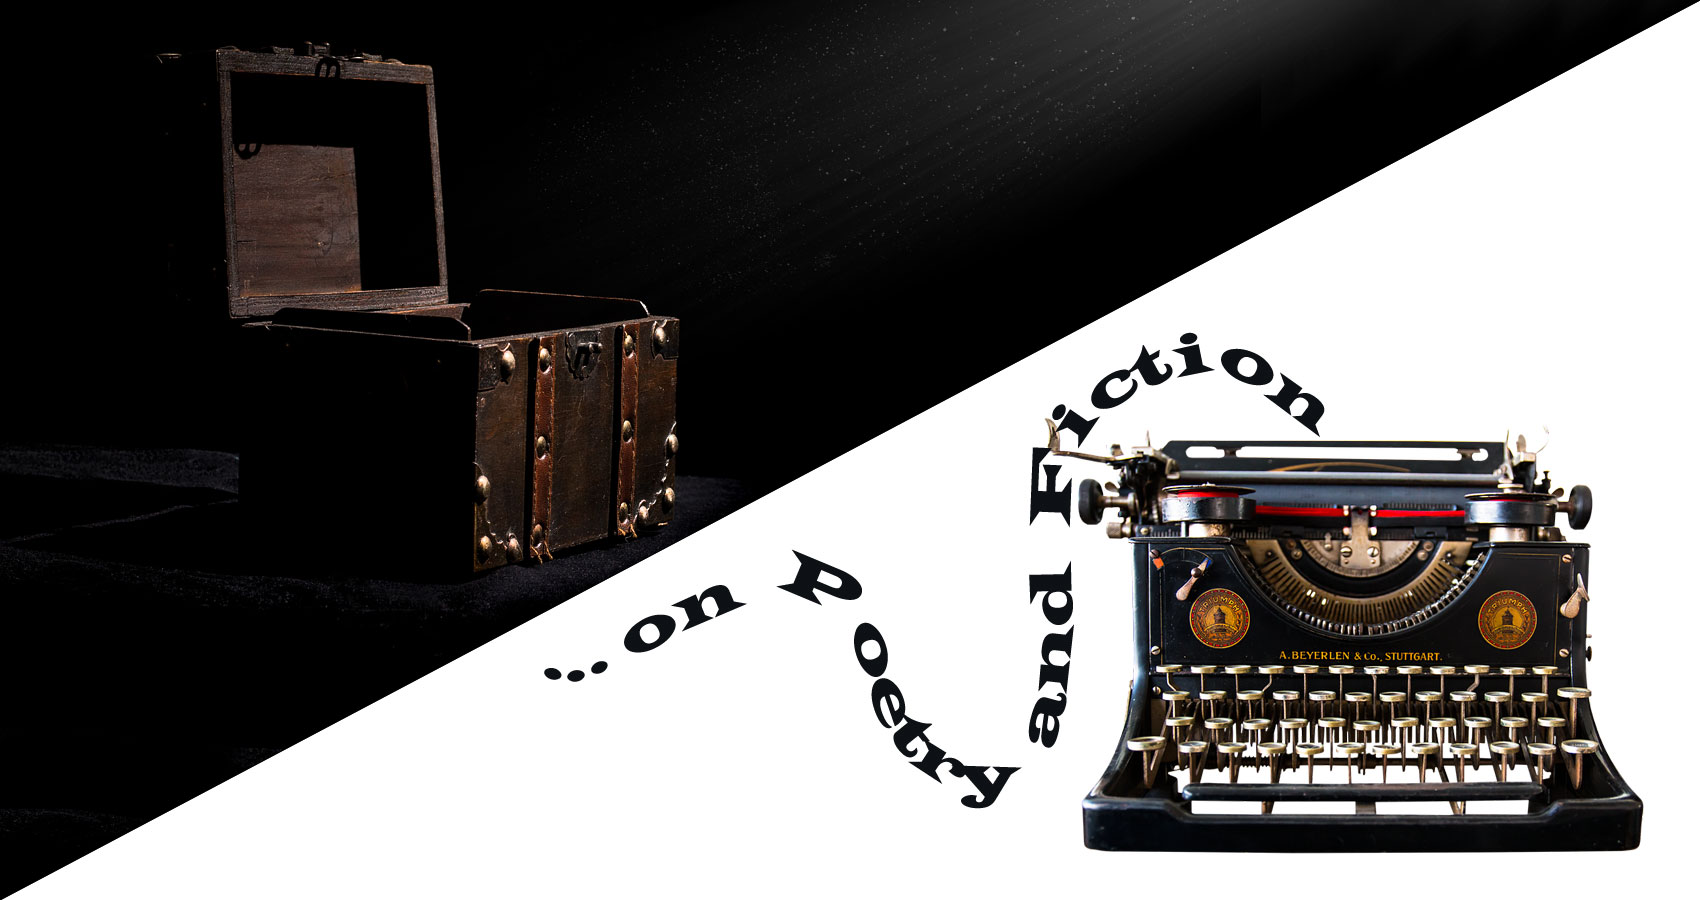 ...on Poetry and Fiction - The Treasure Chest (A Dream and a Memory) by Phyllis P. Colucci at Spillwords.com